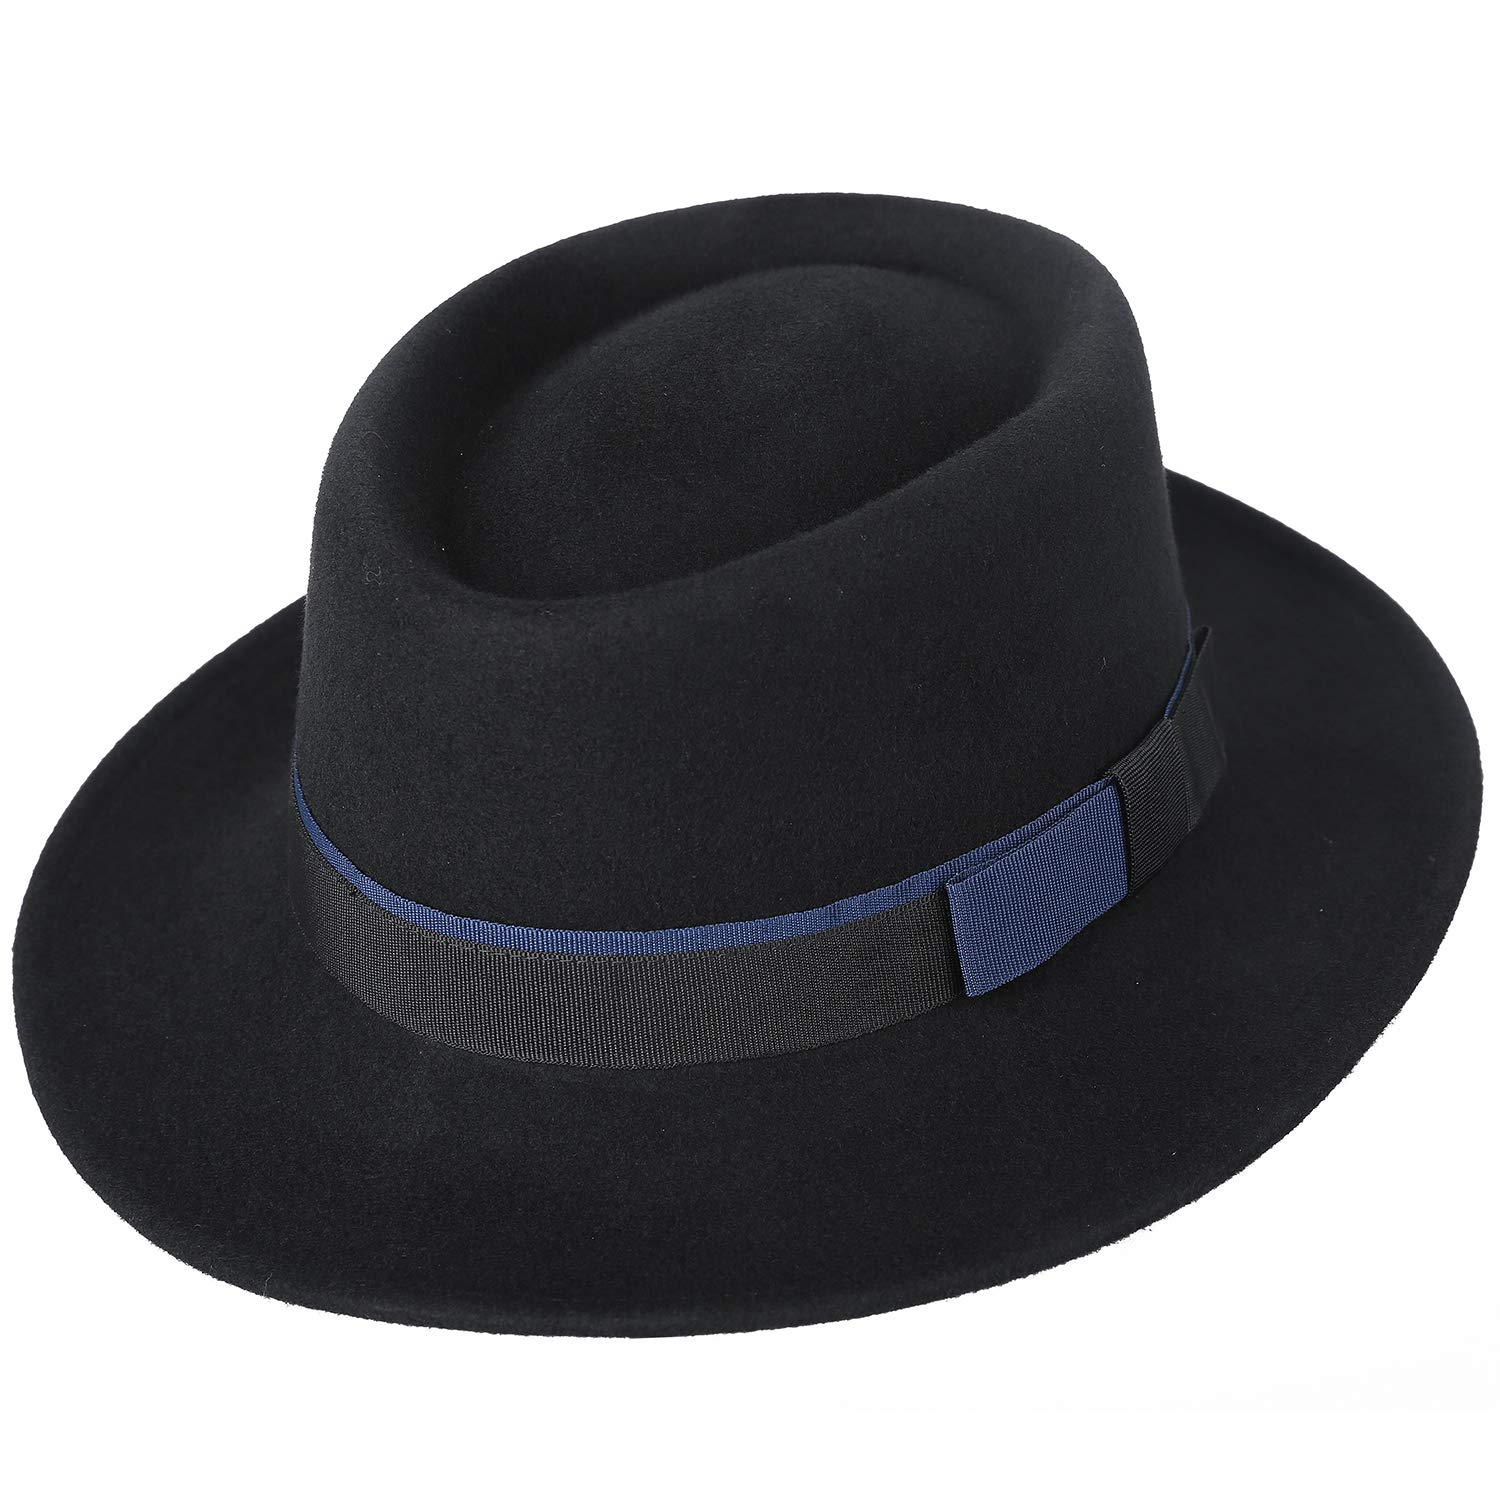 a08be6bf39ae8 Janetshats Men s Wool Felt Pork Pie Fedora Hat Crushable Boater Derby  Ribbon Cap